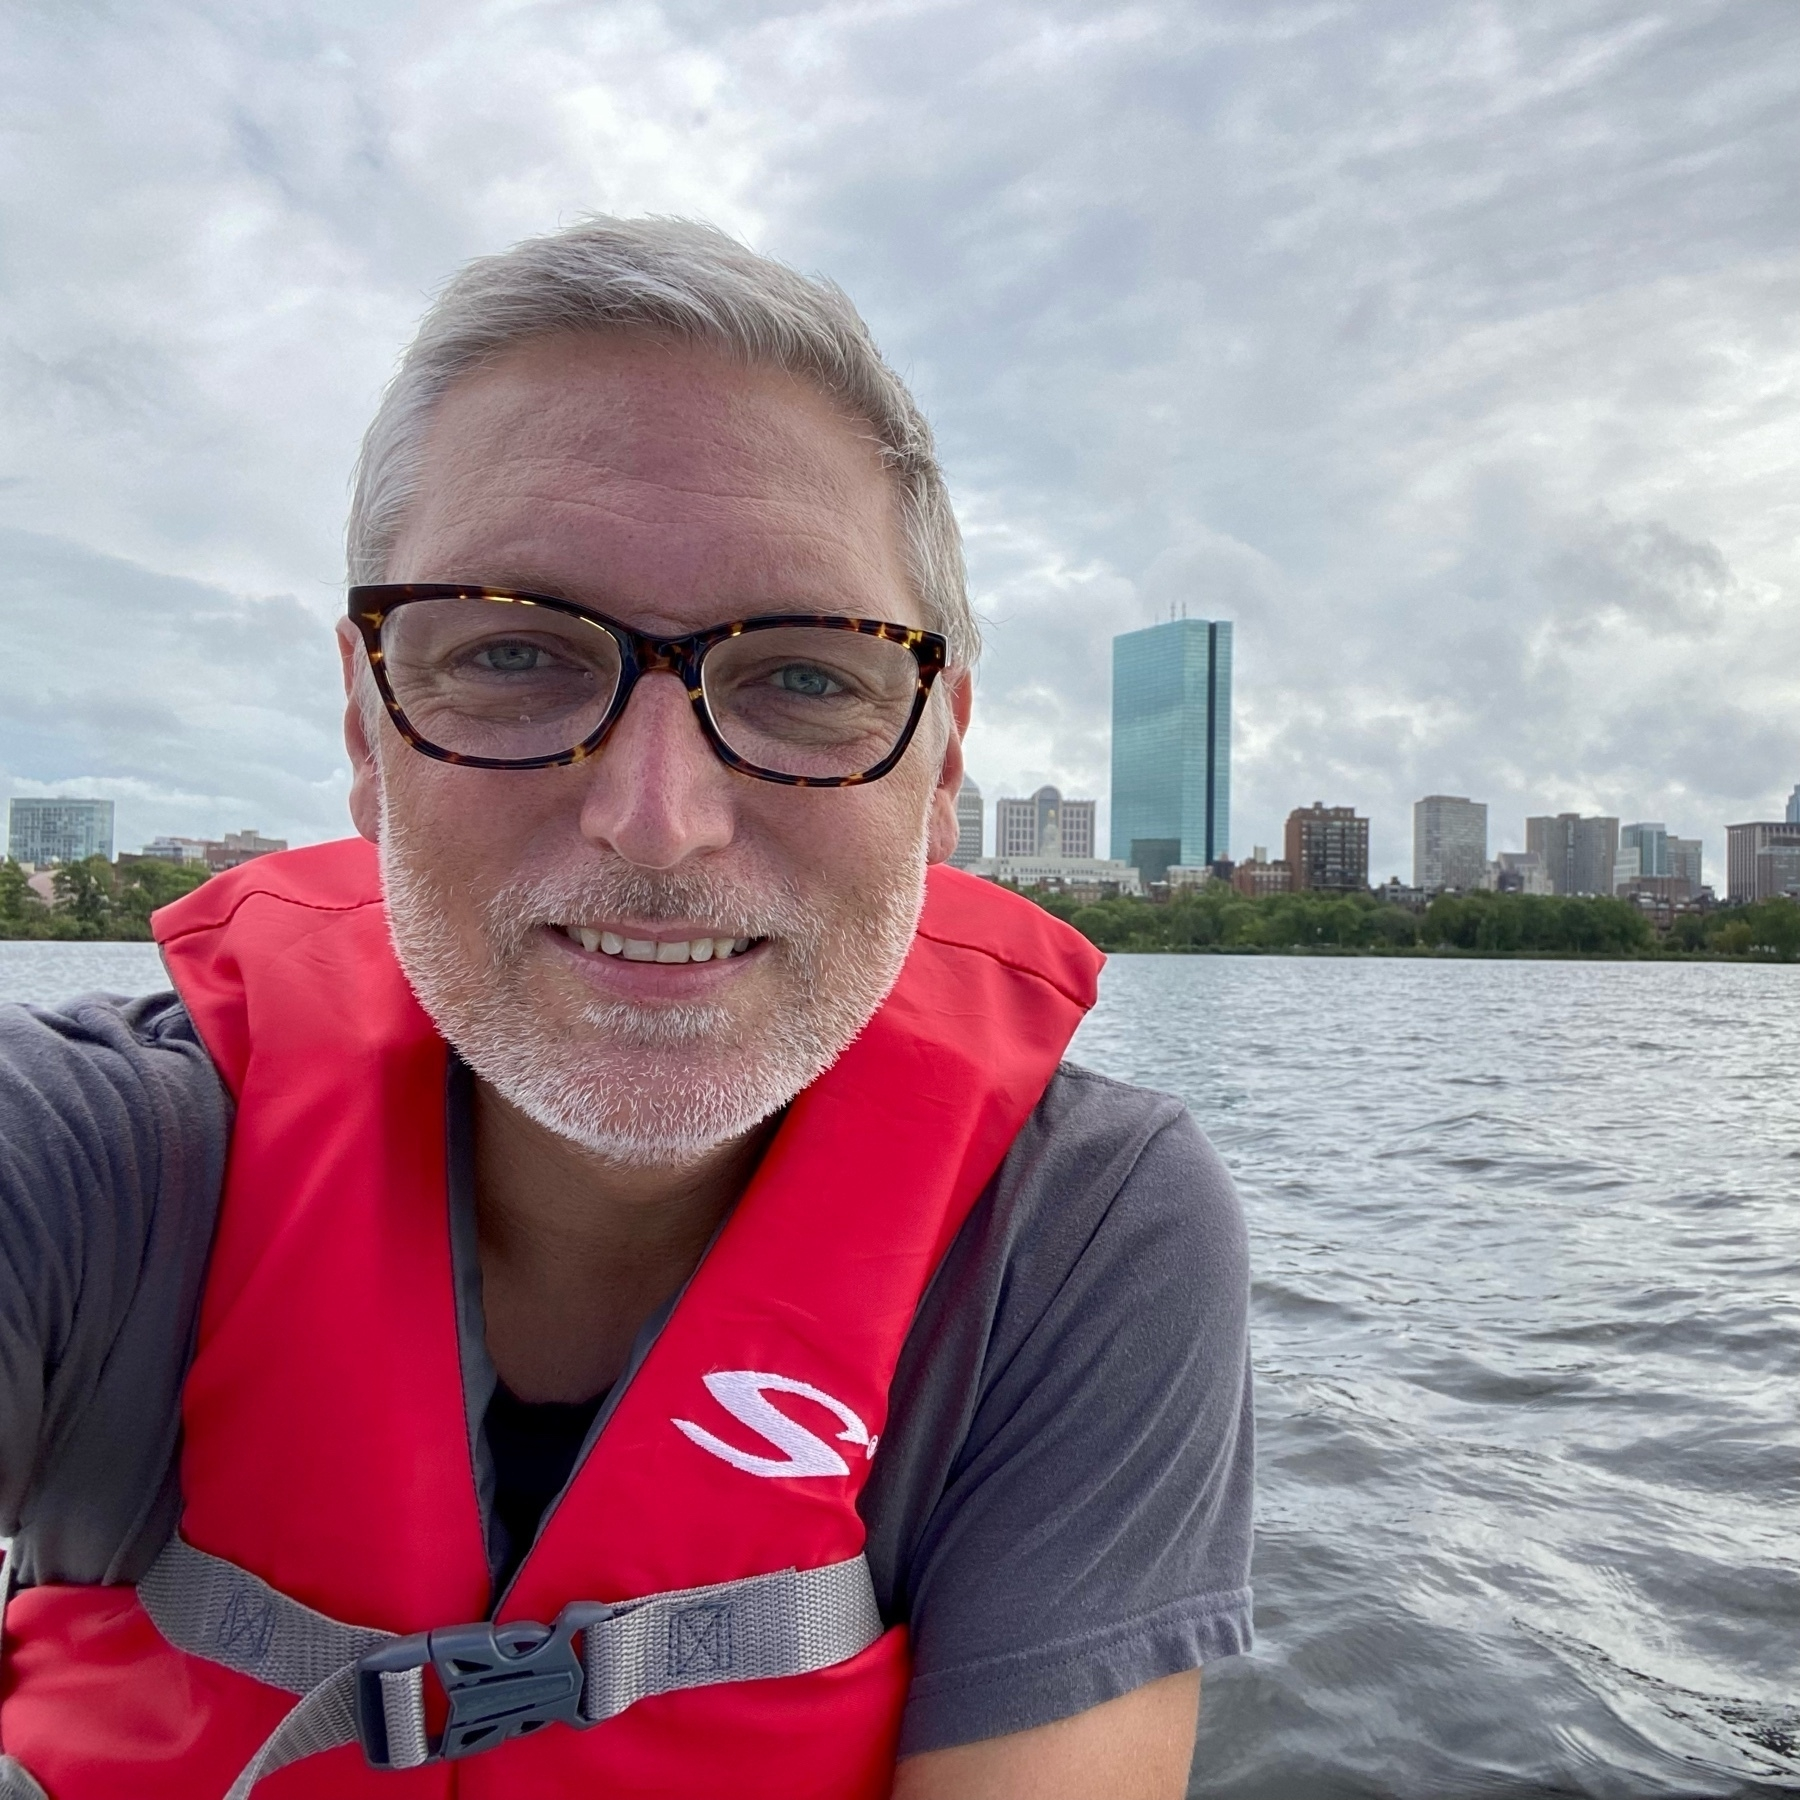 Selfie on a sailboat with Boston skyline behind me.